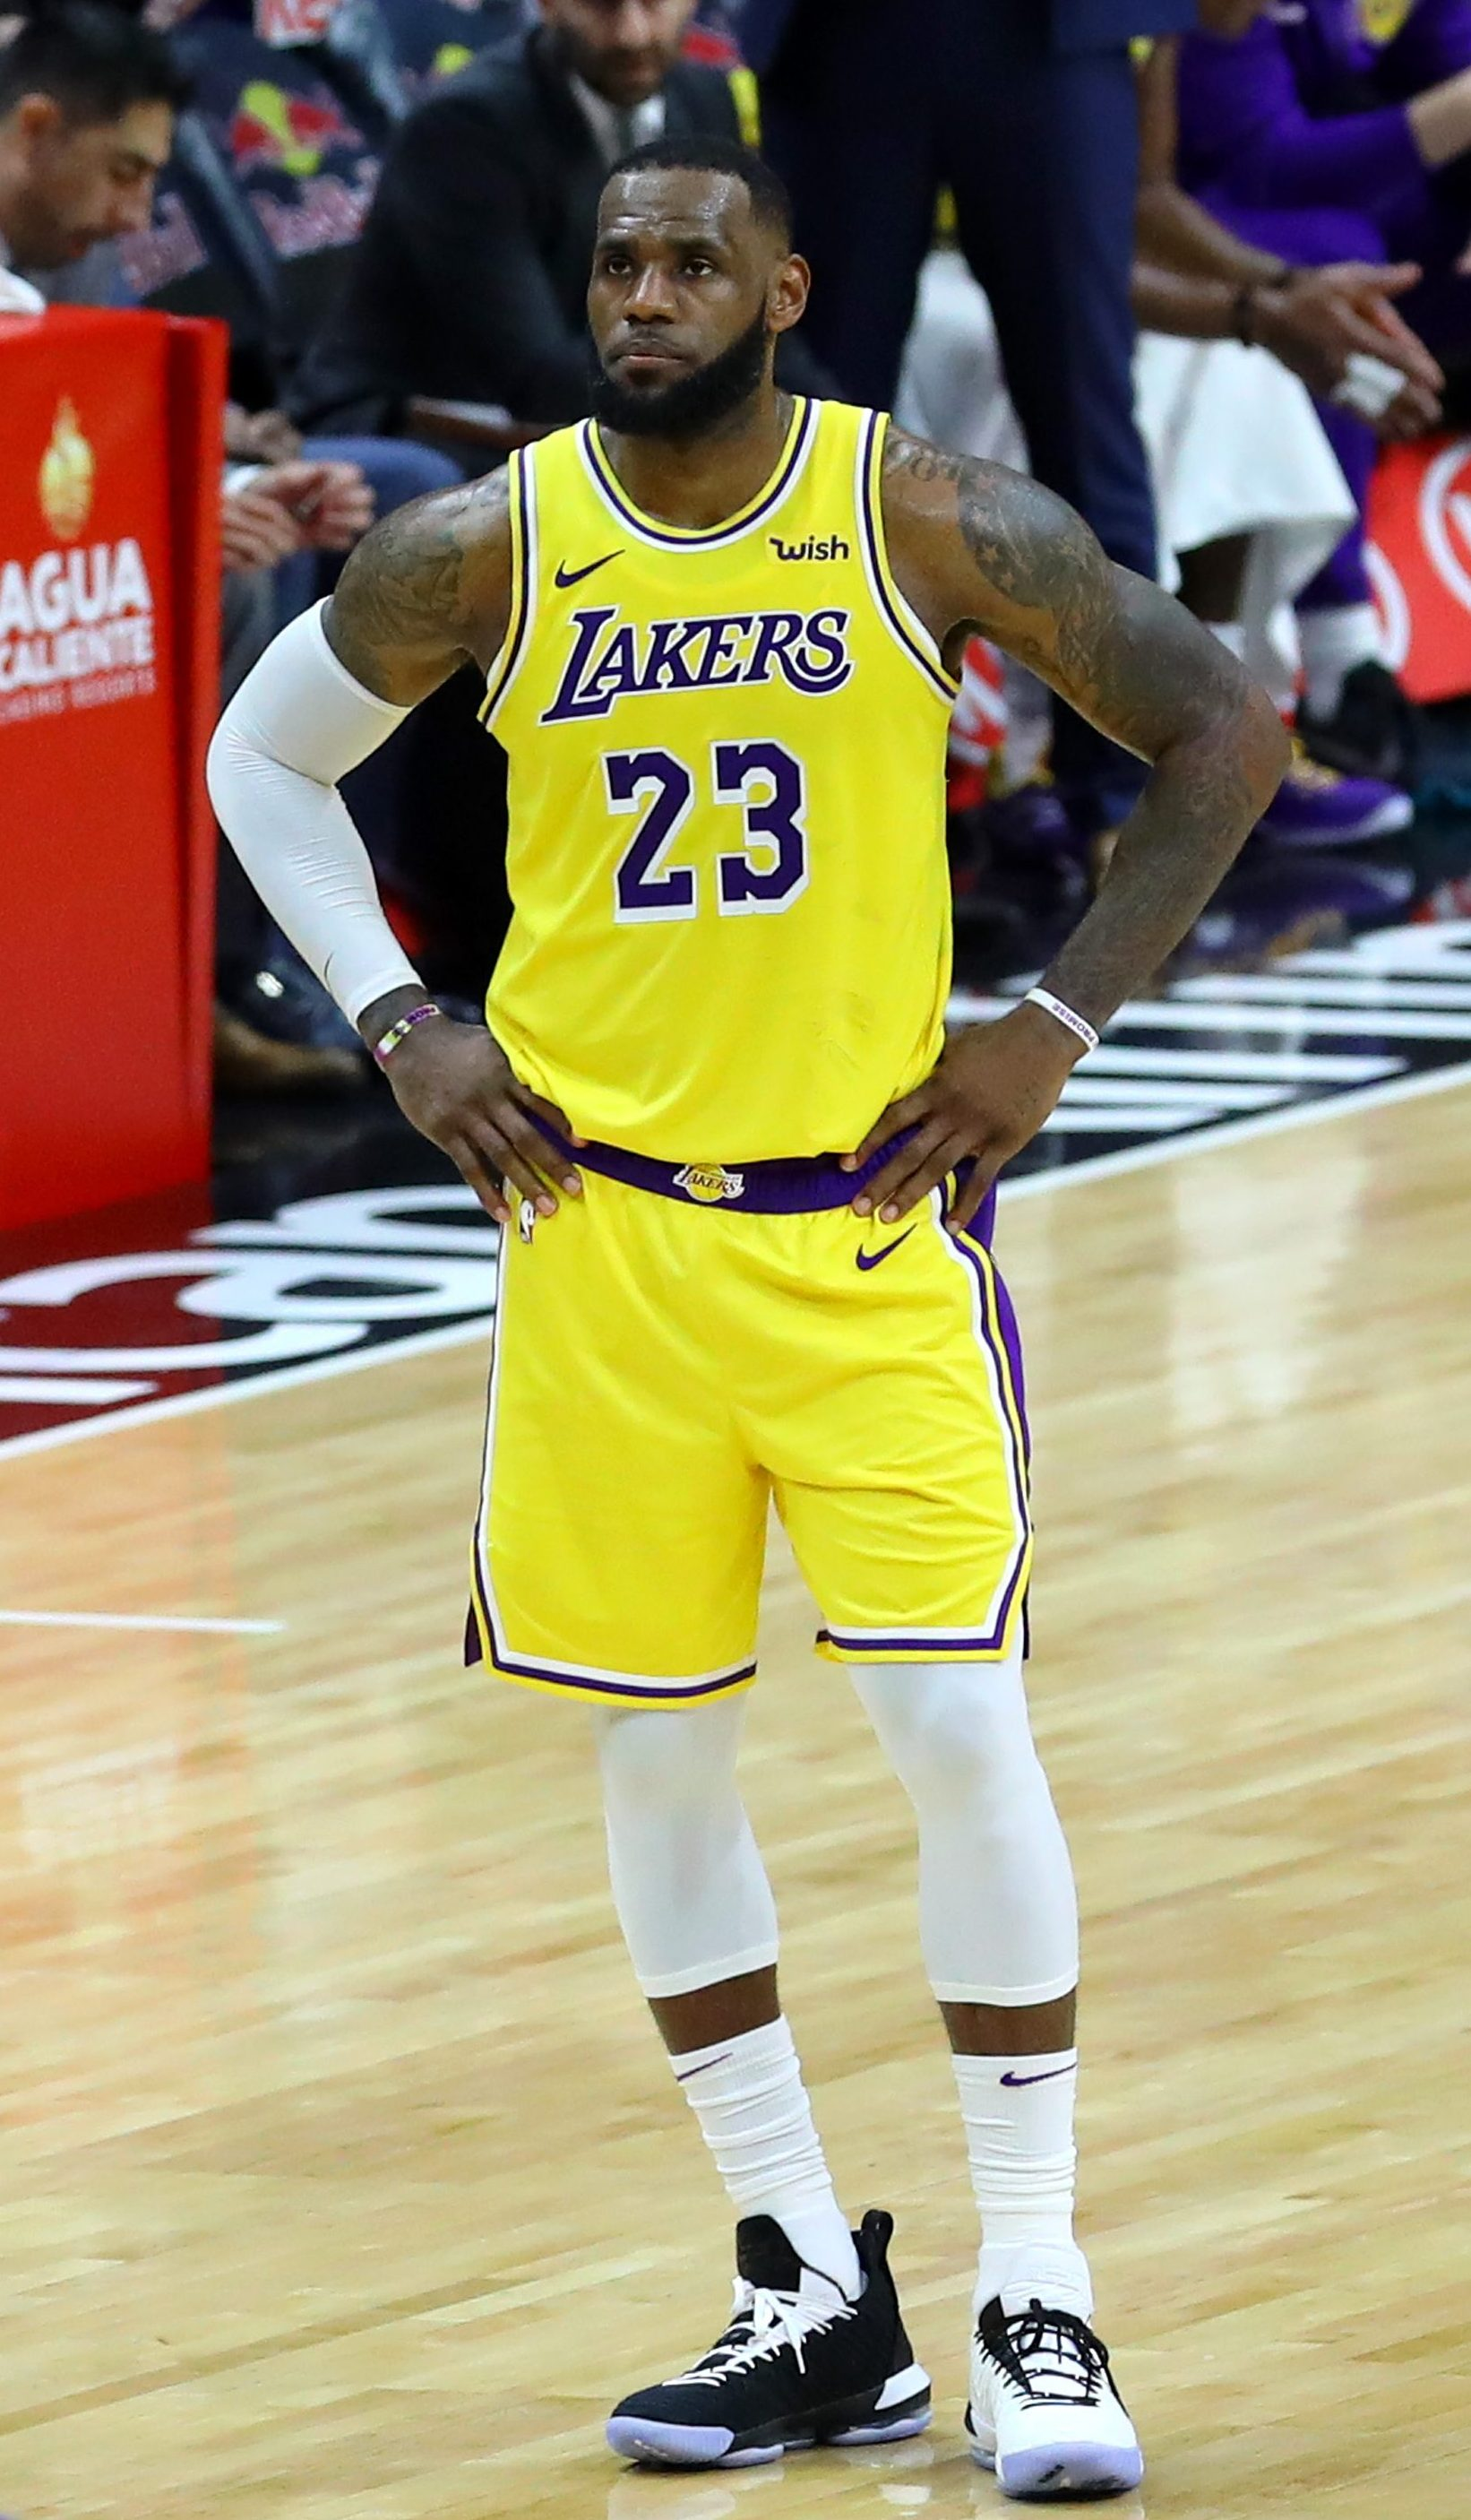 593b8576b LeBron James named captain of the 2019 Western Conference All-Star team in  Charlotte